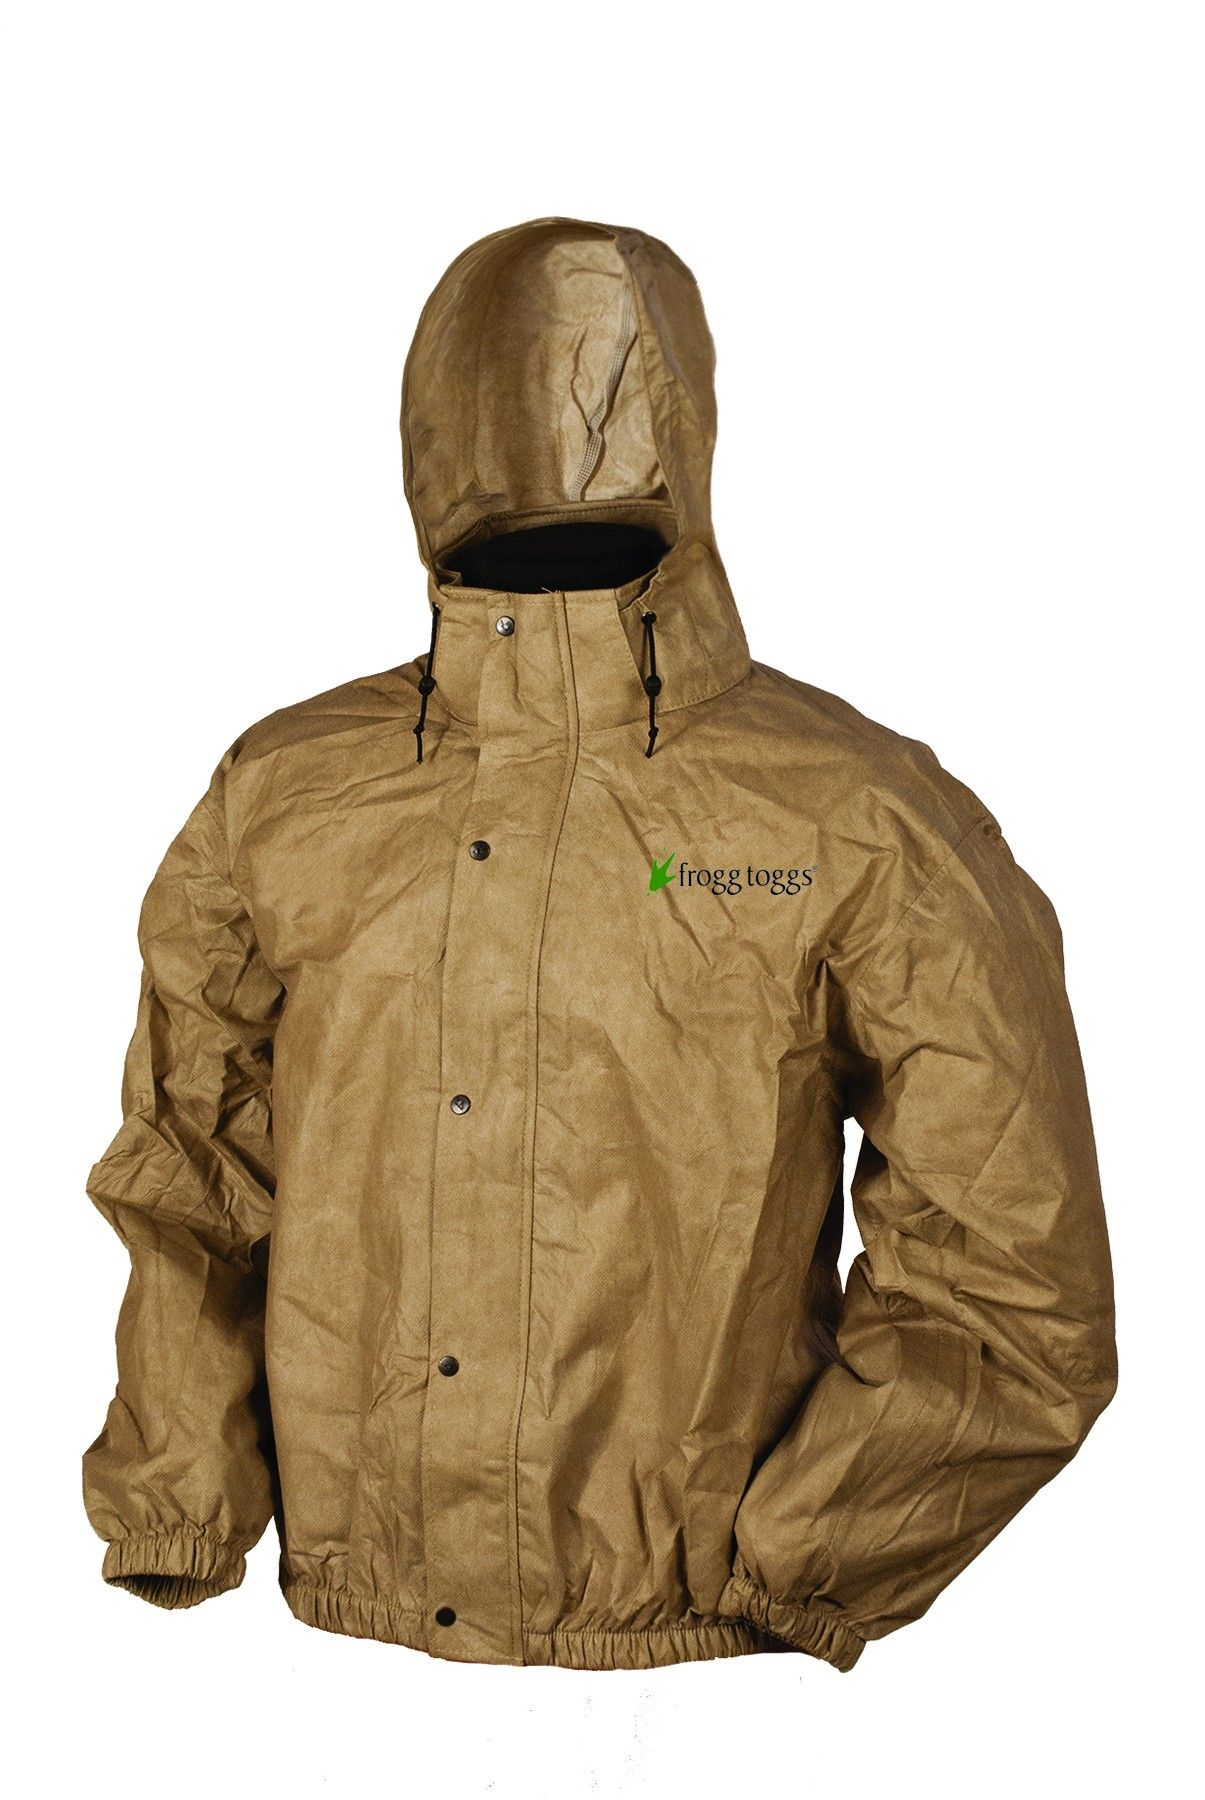 Lightweight Breathable Rain Jacket Jackets Review